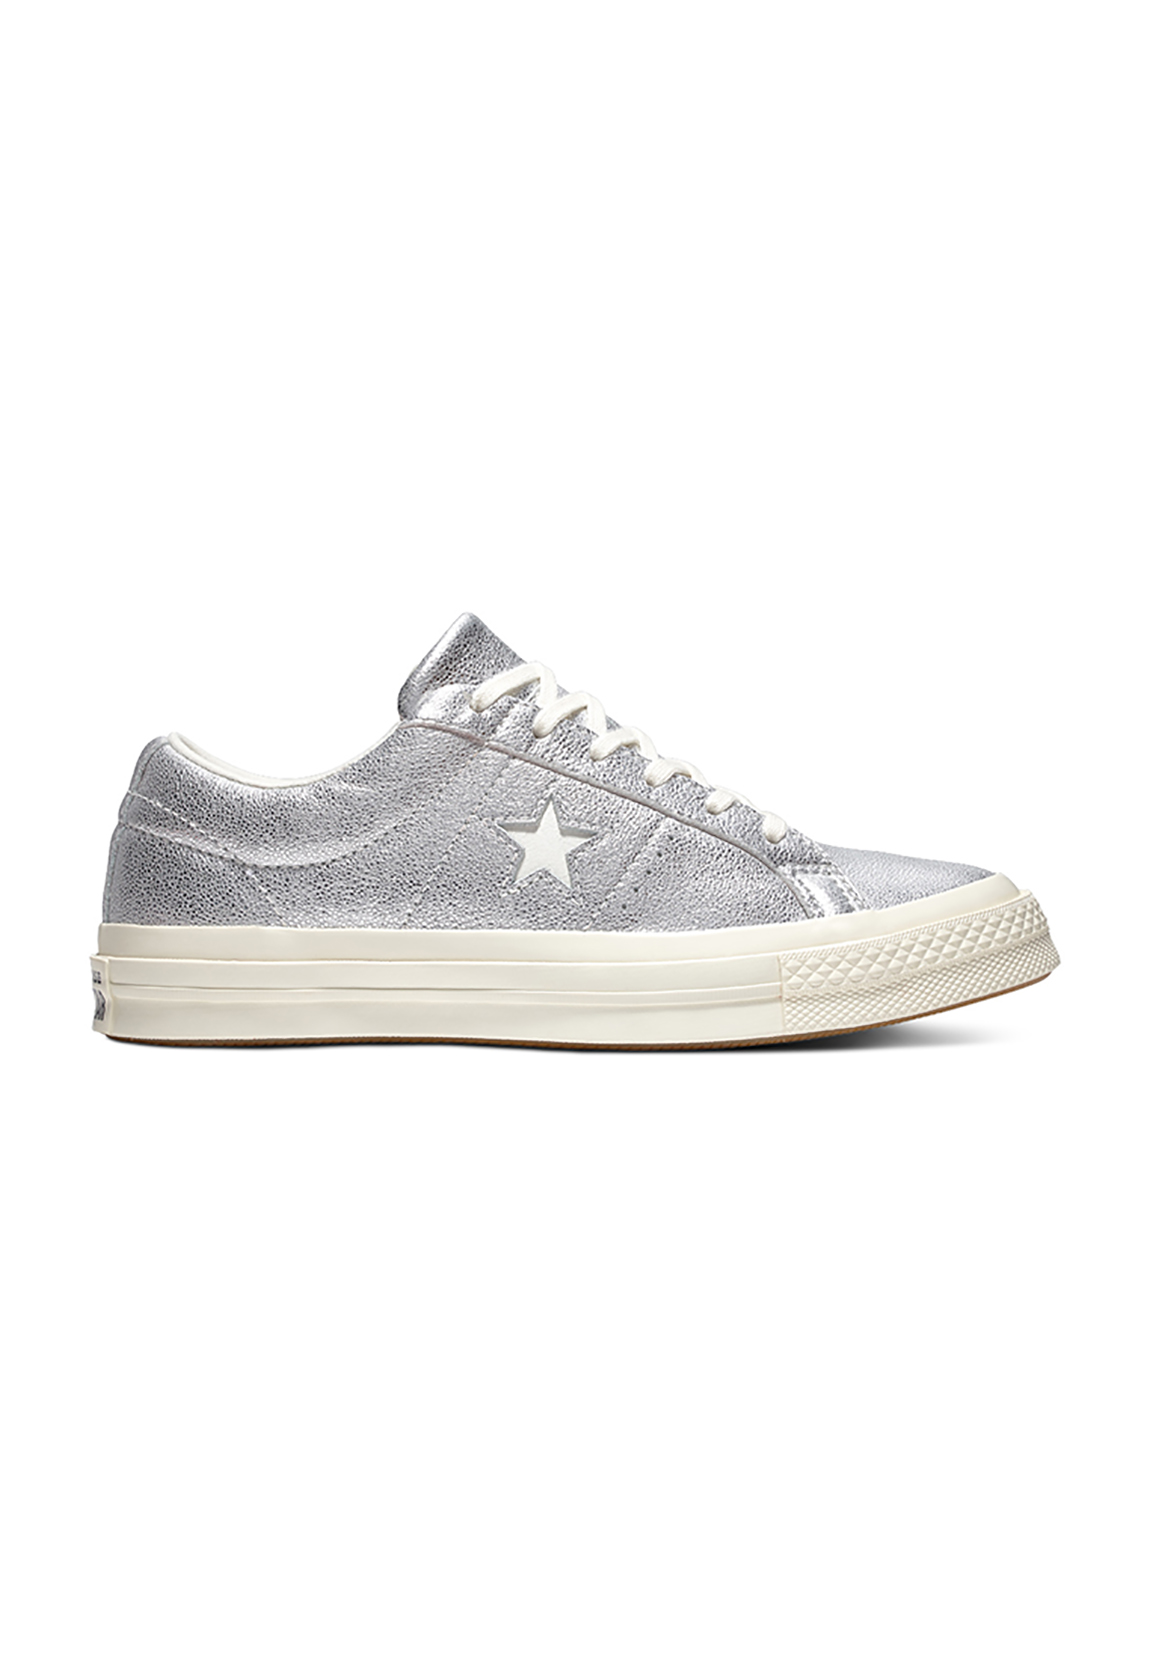 c7e0113d996c5 Converse Trainers One Star Ox 161590C Silver